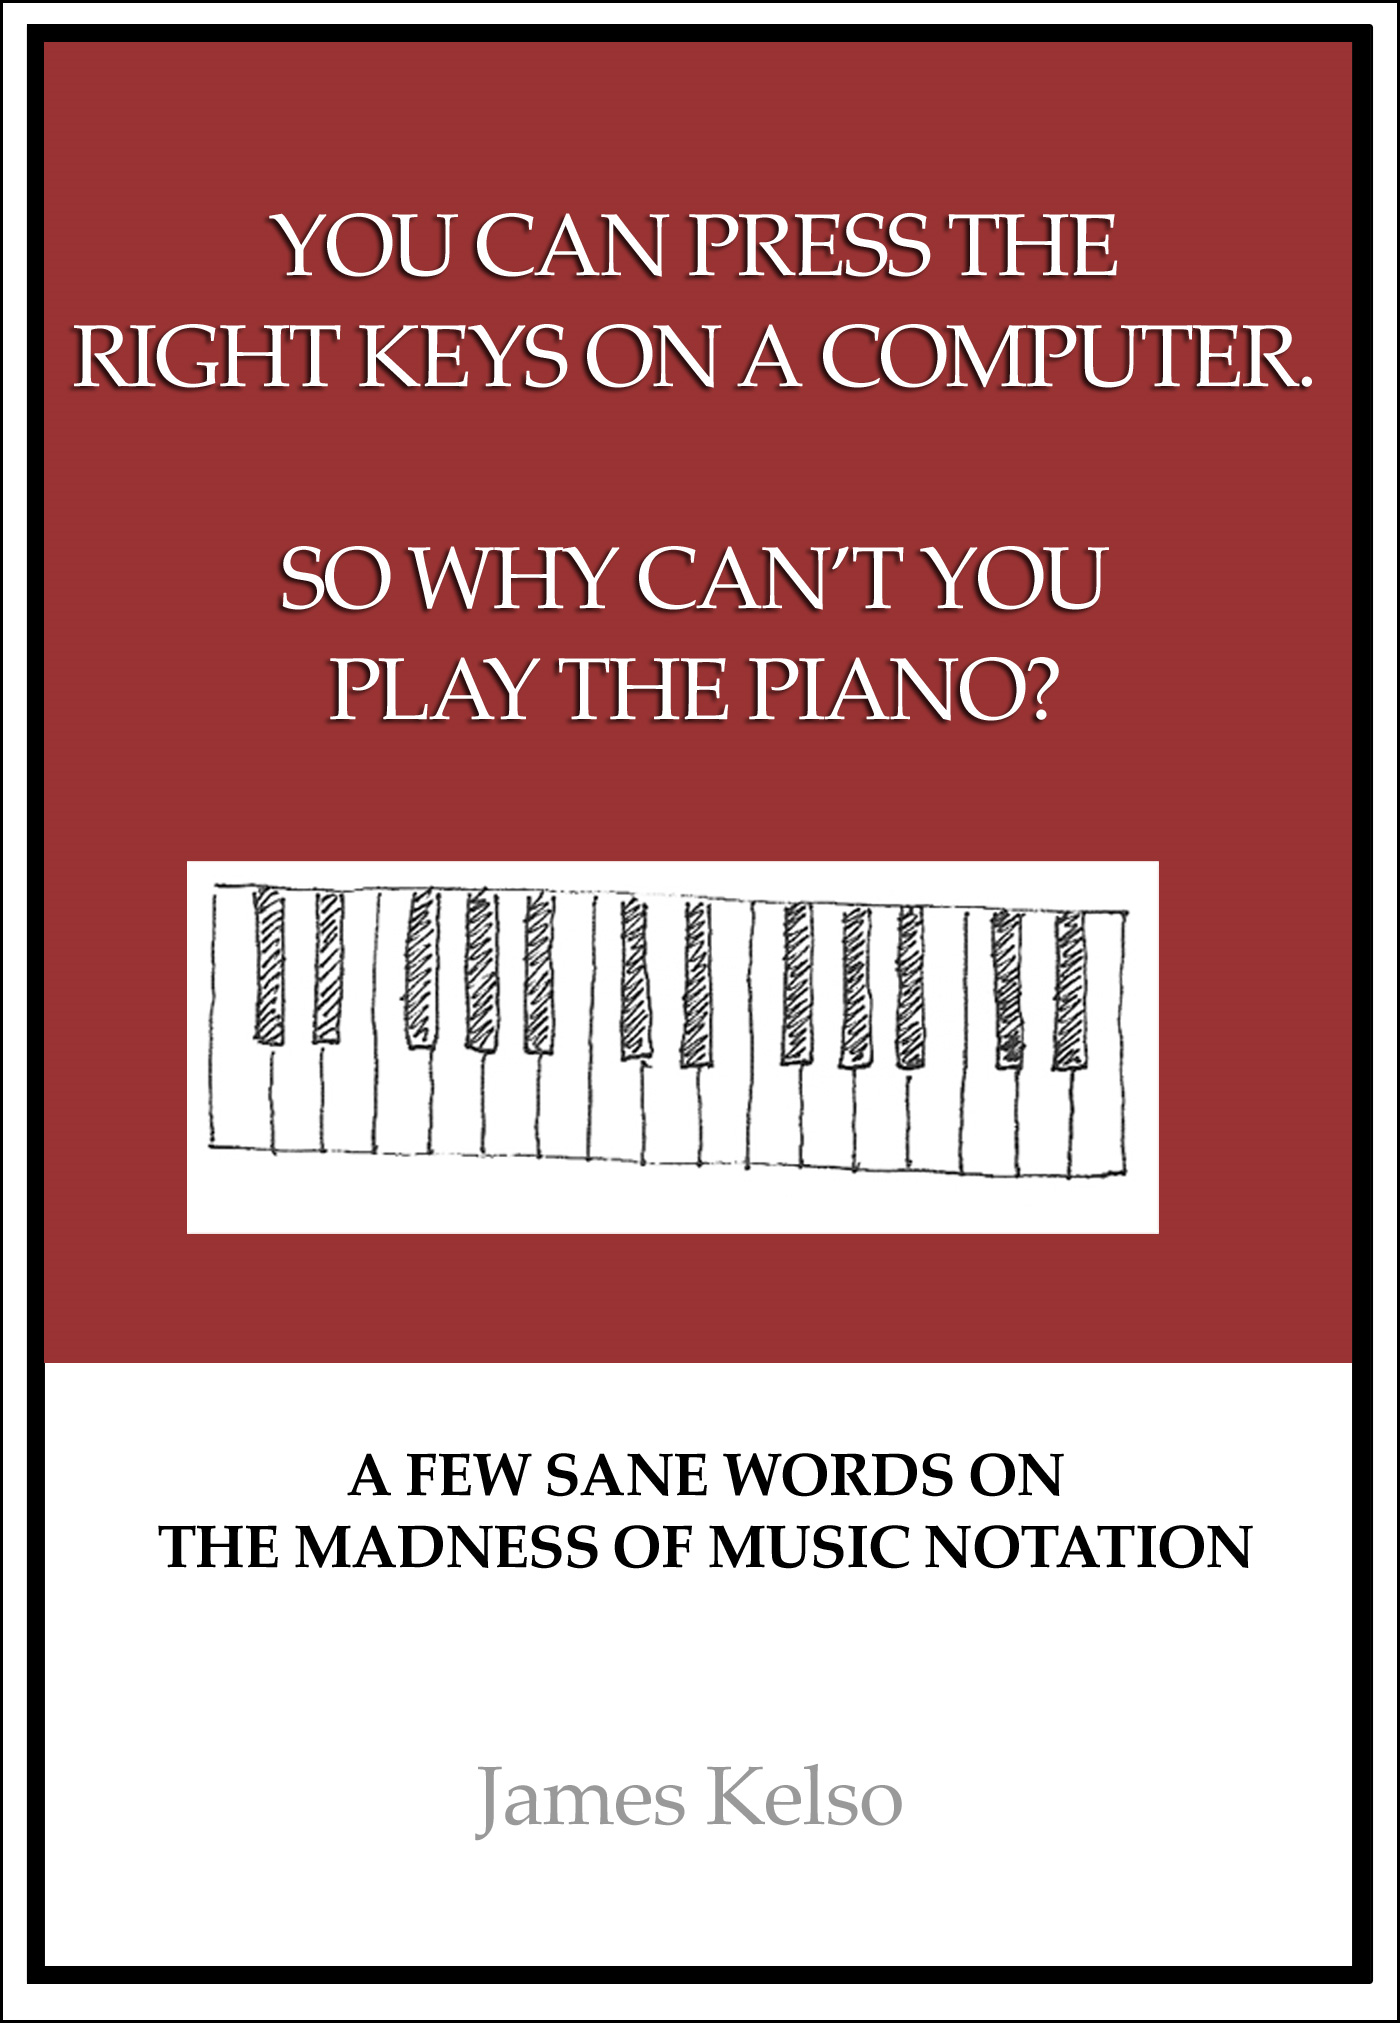 You can press the right keys on a computer. So why cant you play the piano?